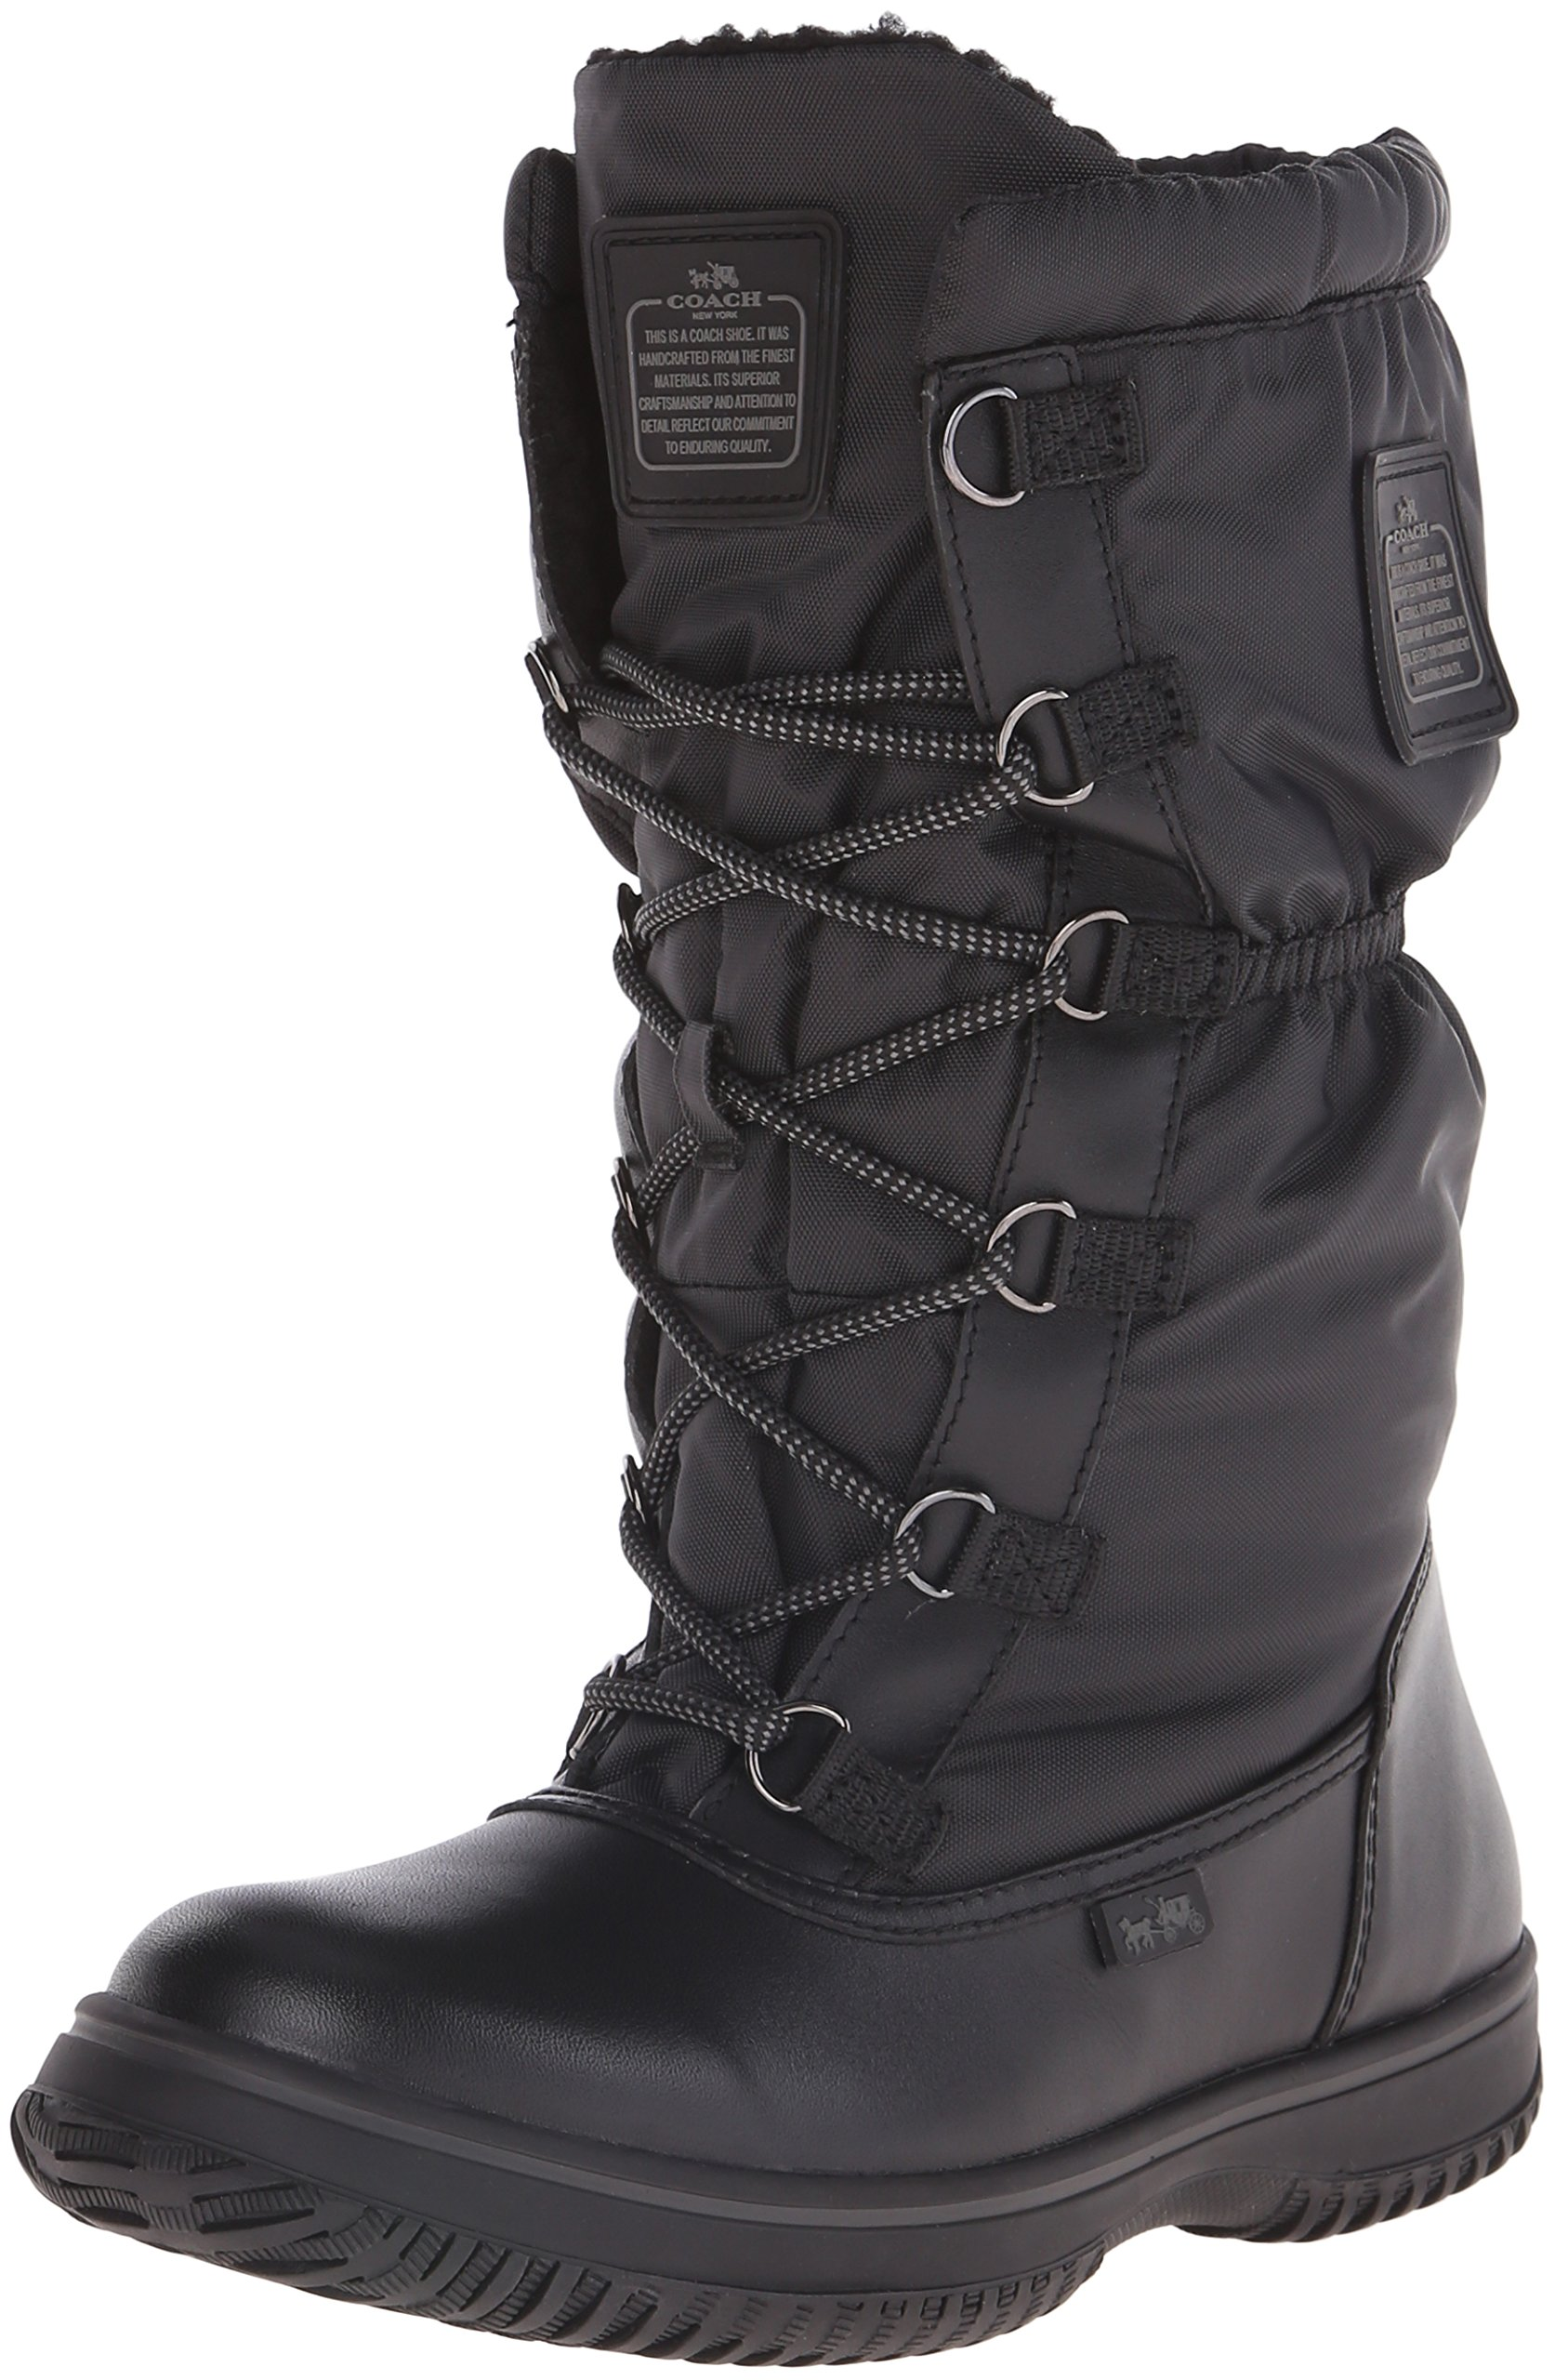 Coach Women¡¯s Sage Black/Black Lace-Up Cold Weather Boots 8.5 (B) M, Style A9177